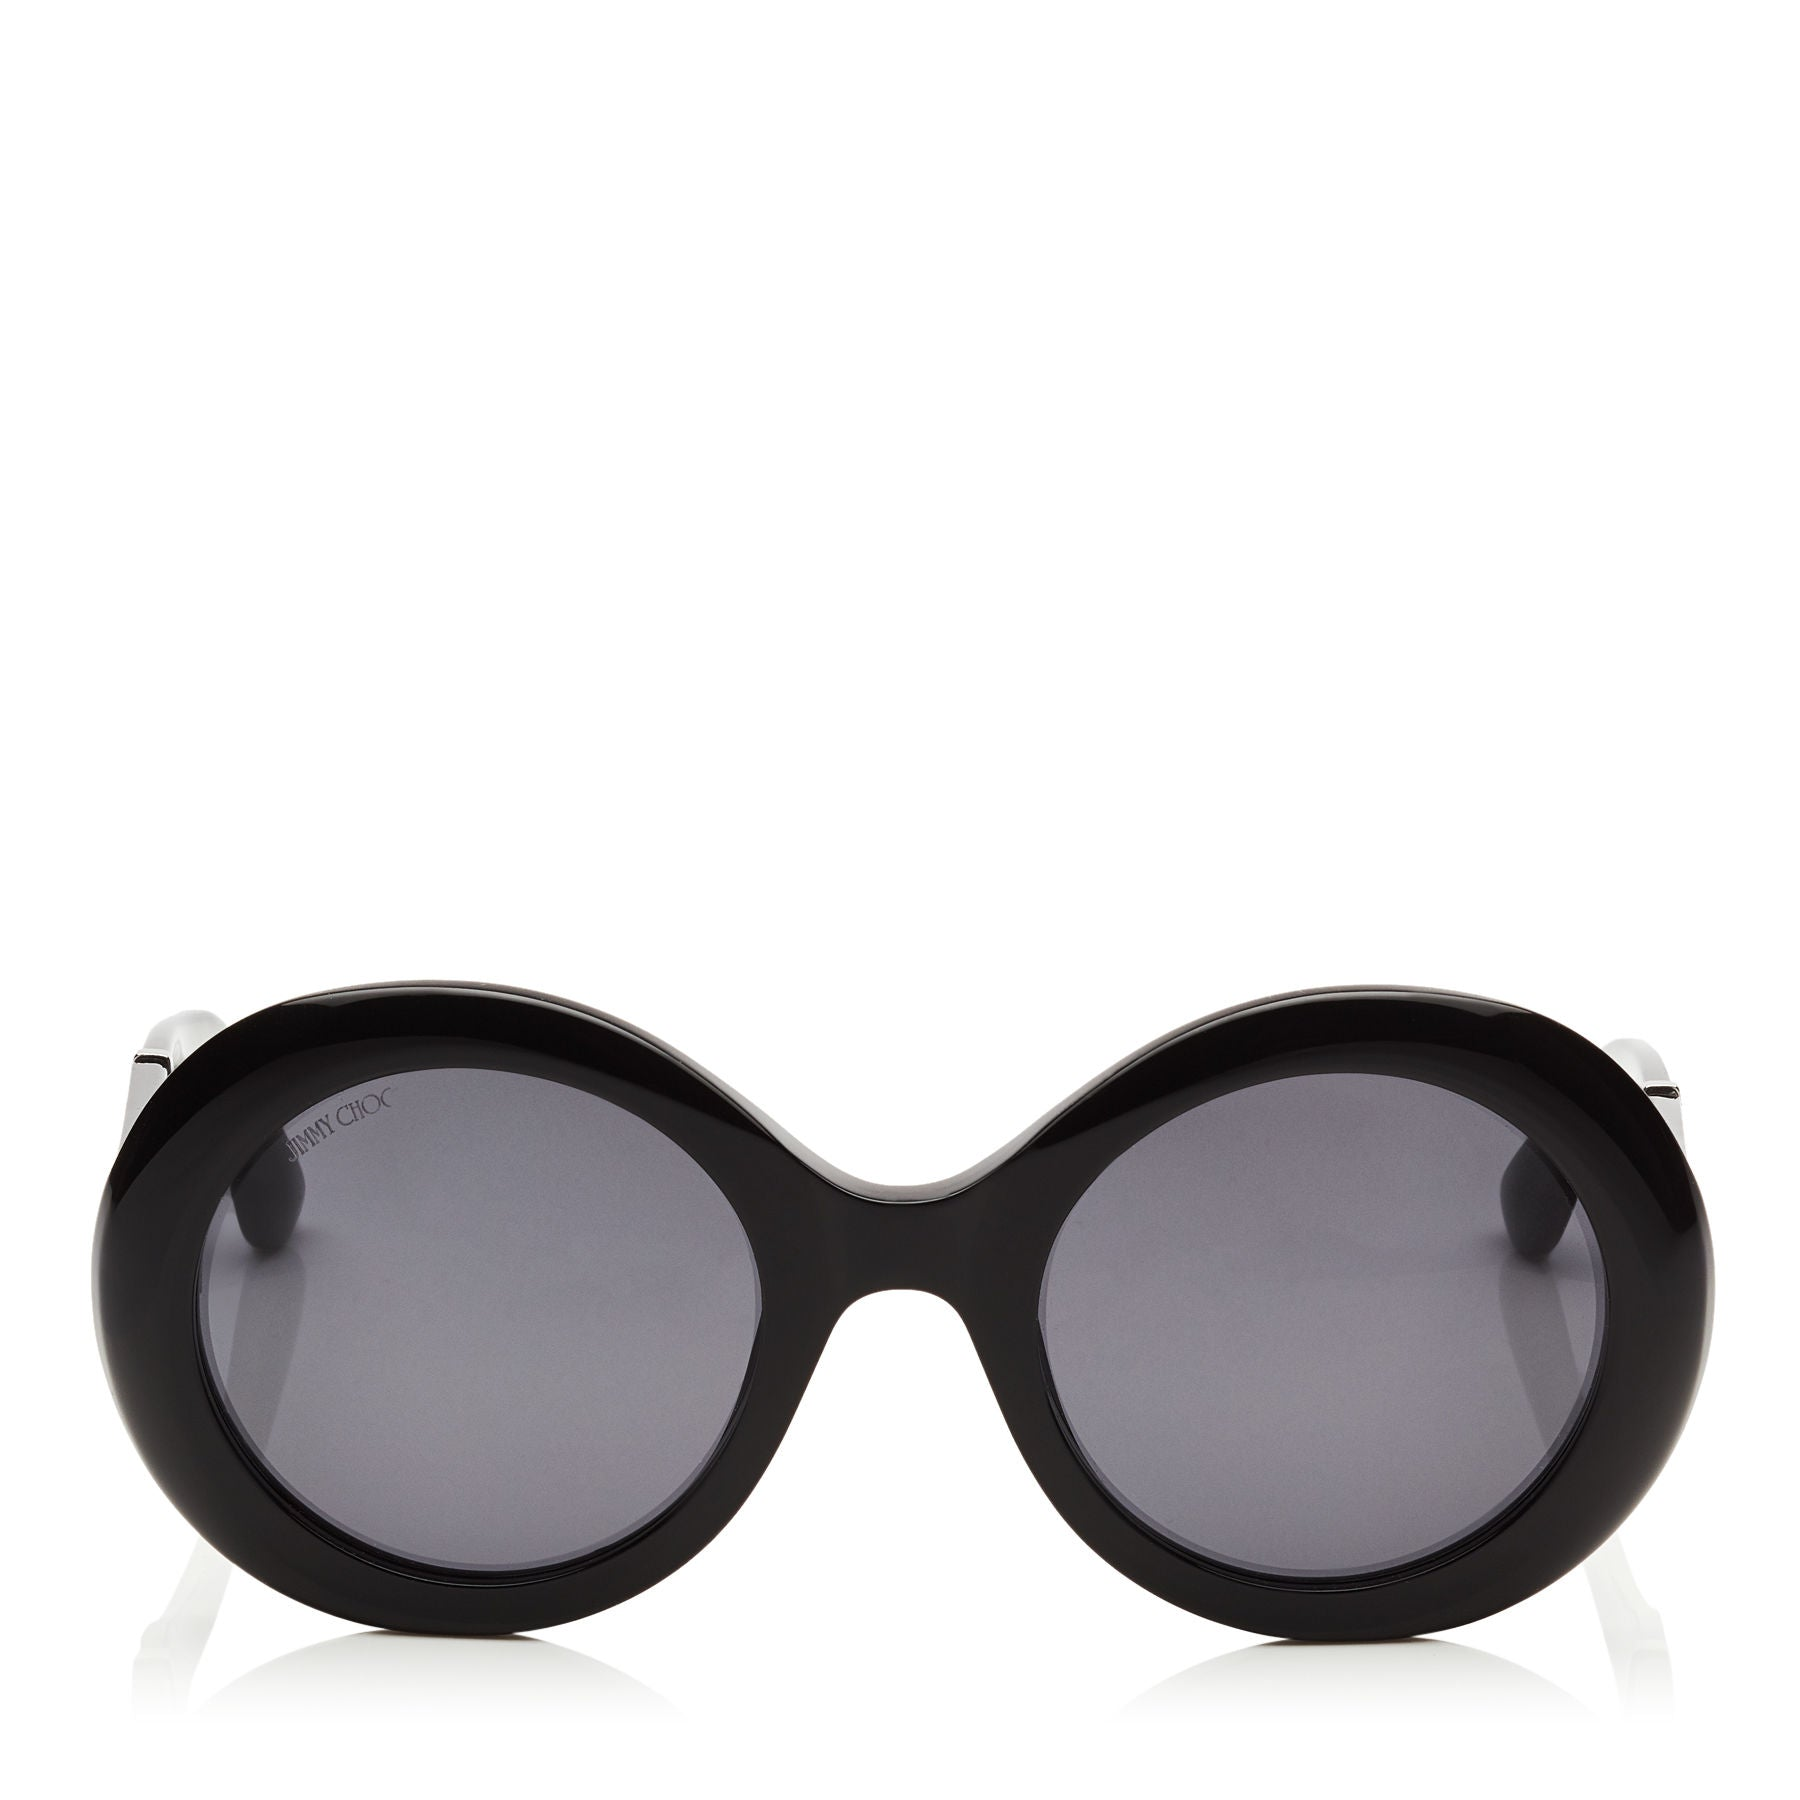 JIMMY CHOO Wendy Black Round Framed Sunglasses with Lurex Detailing ...